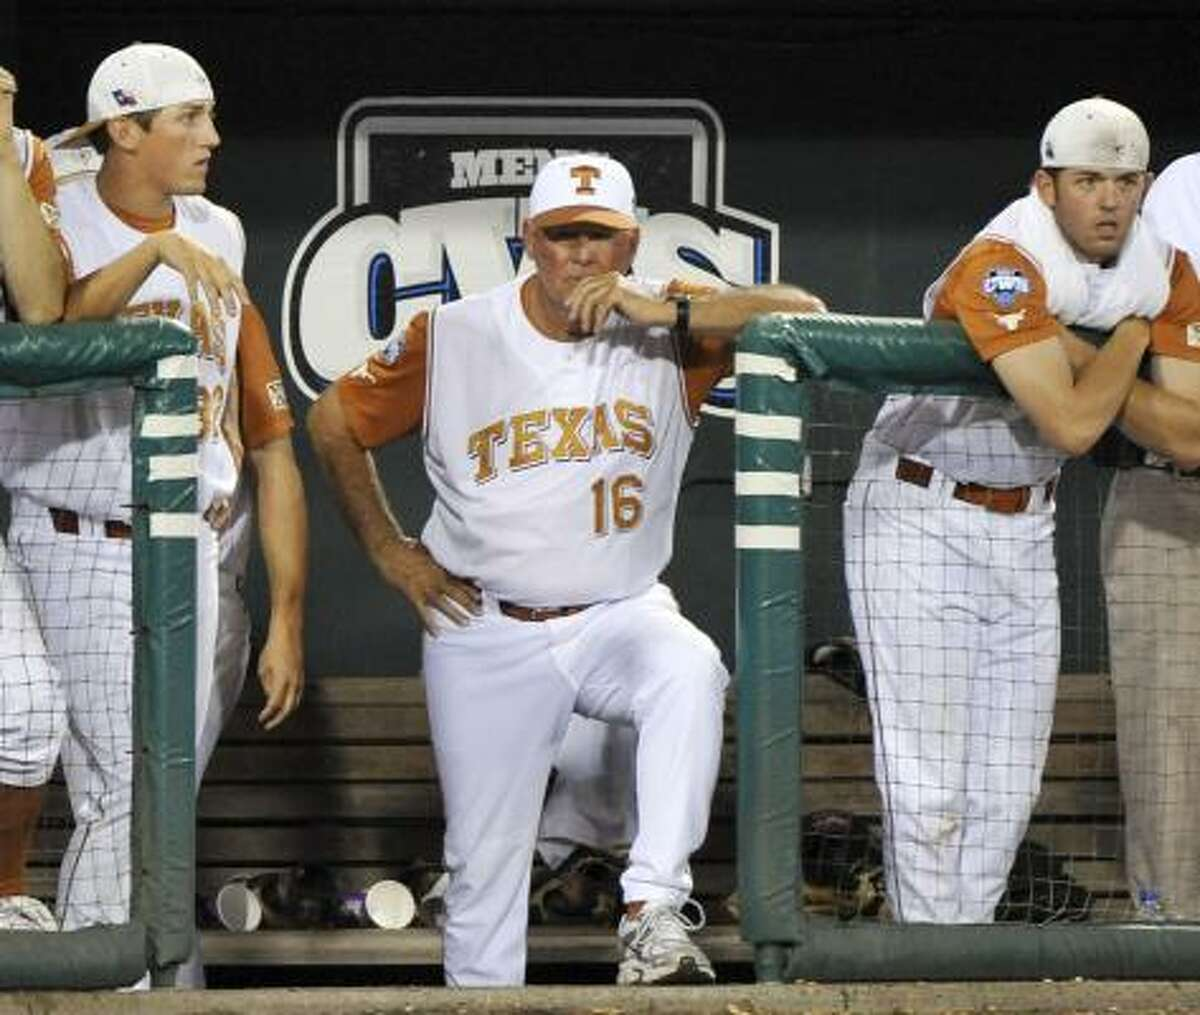 Texas coach Augie Garrido, center, along with Texas' Kendal Carrillo, left, and Austin Wood watch the last out in the game from the dugout.